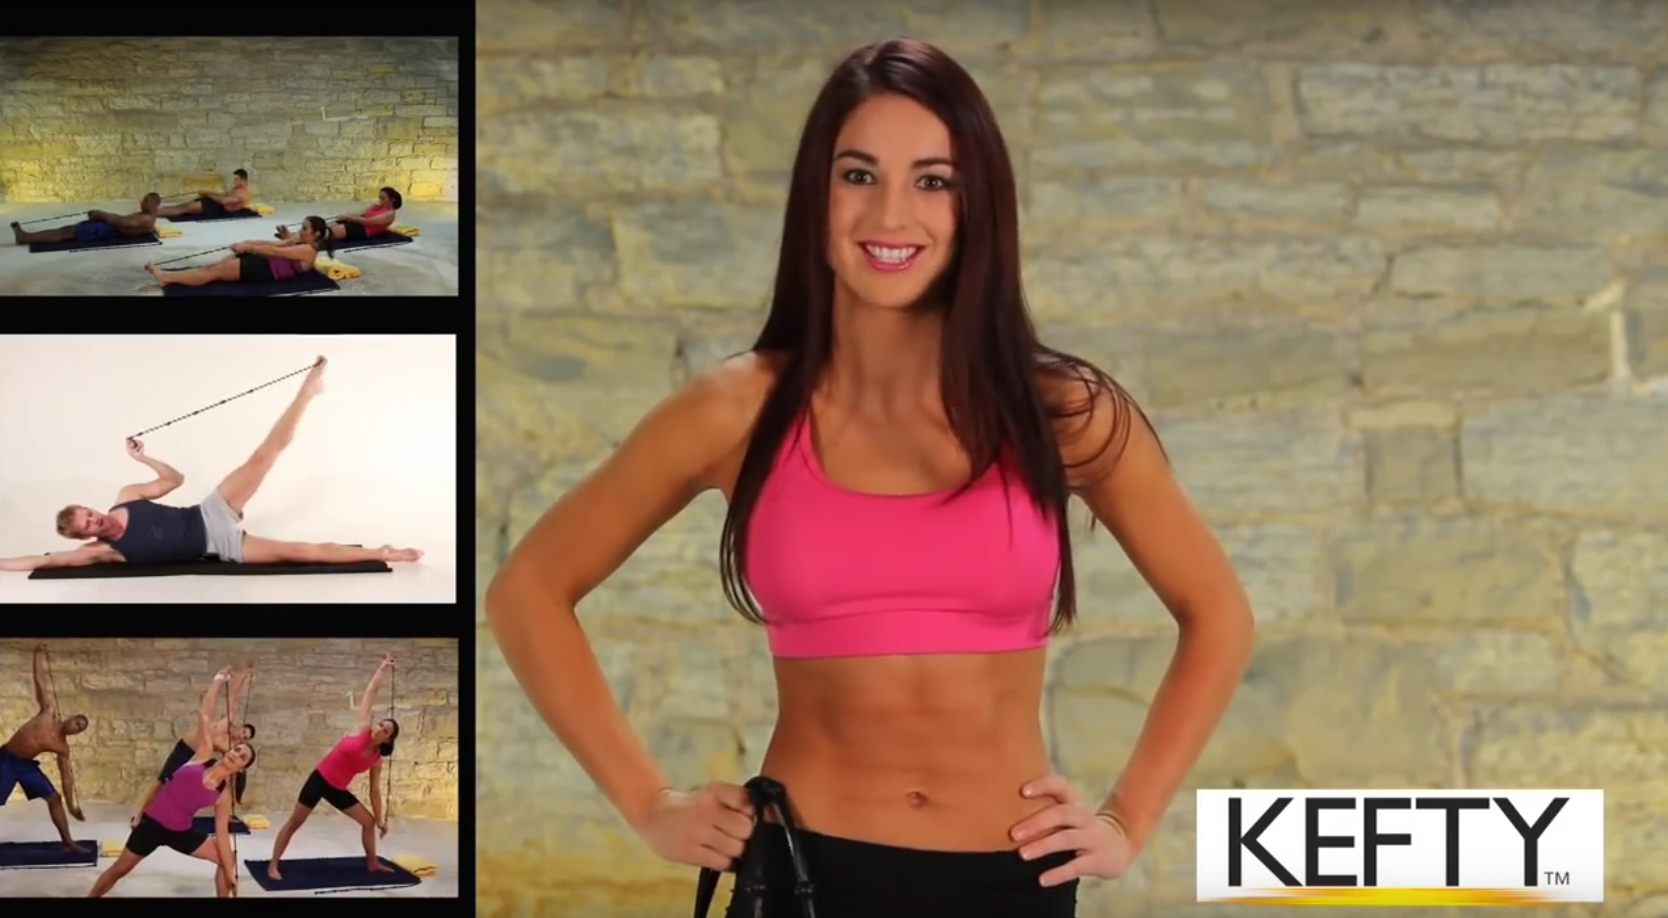 fitness-video-production